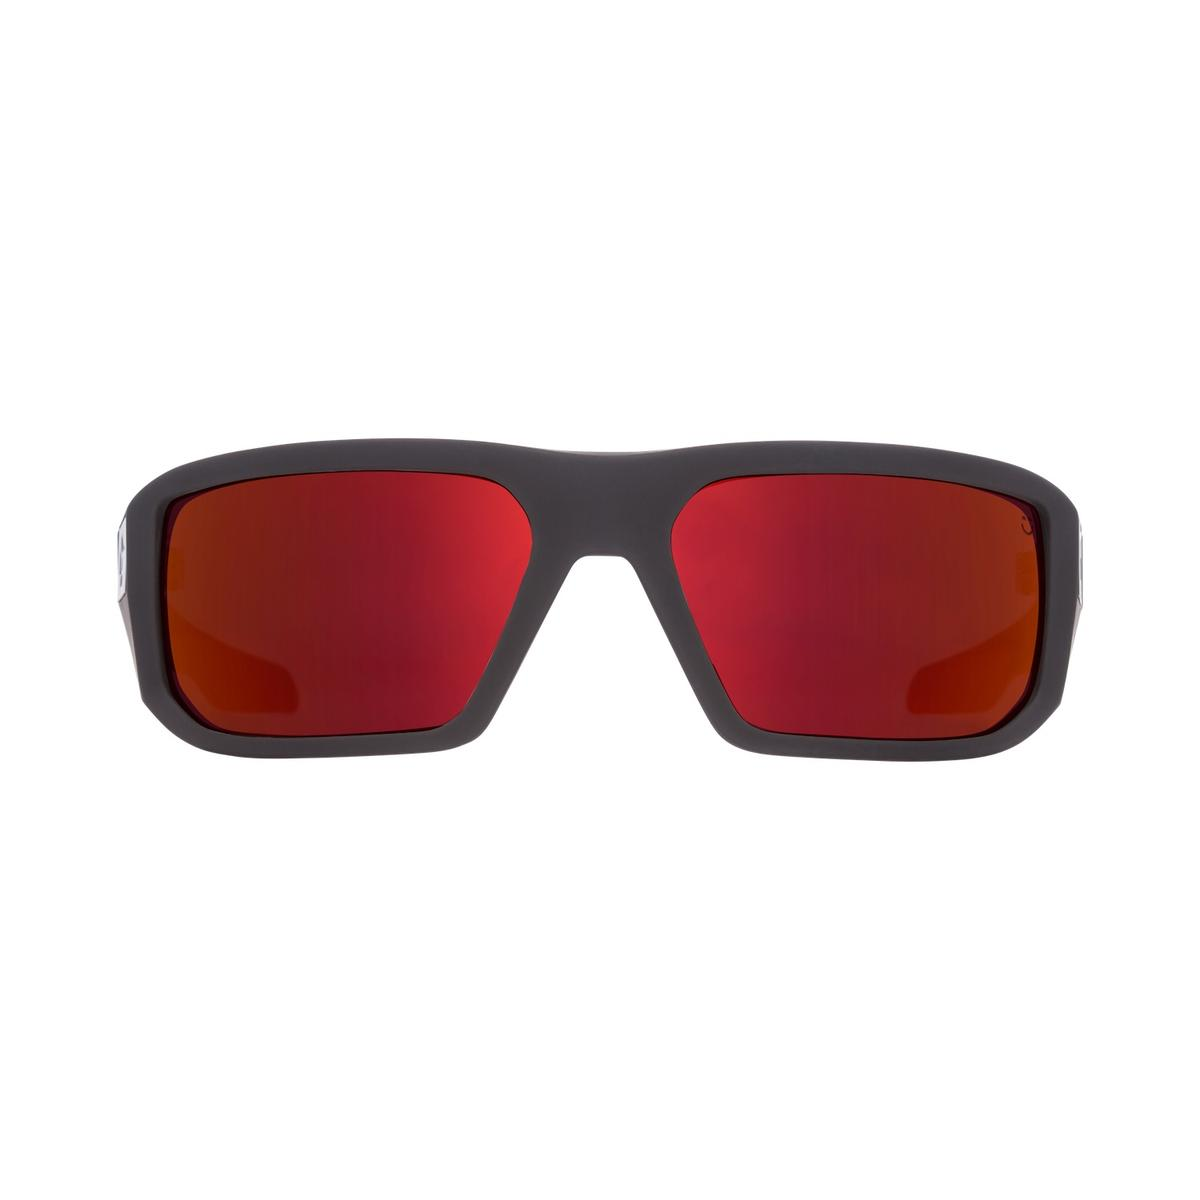 Spy Mccoy Men's Sunglasses